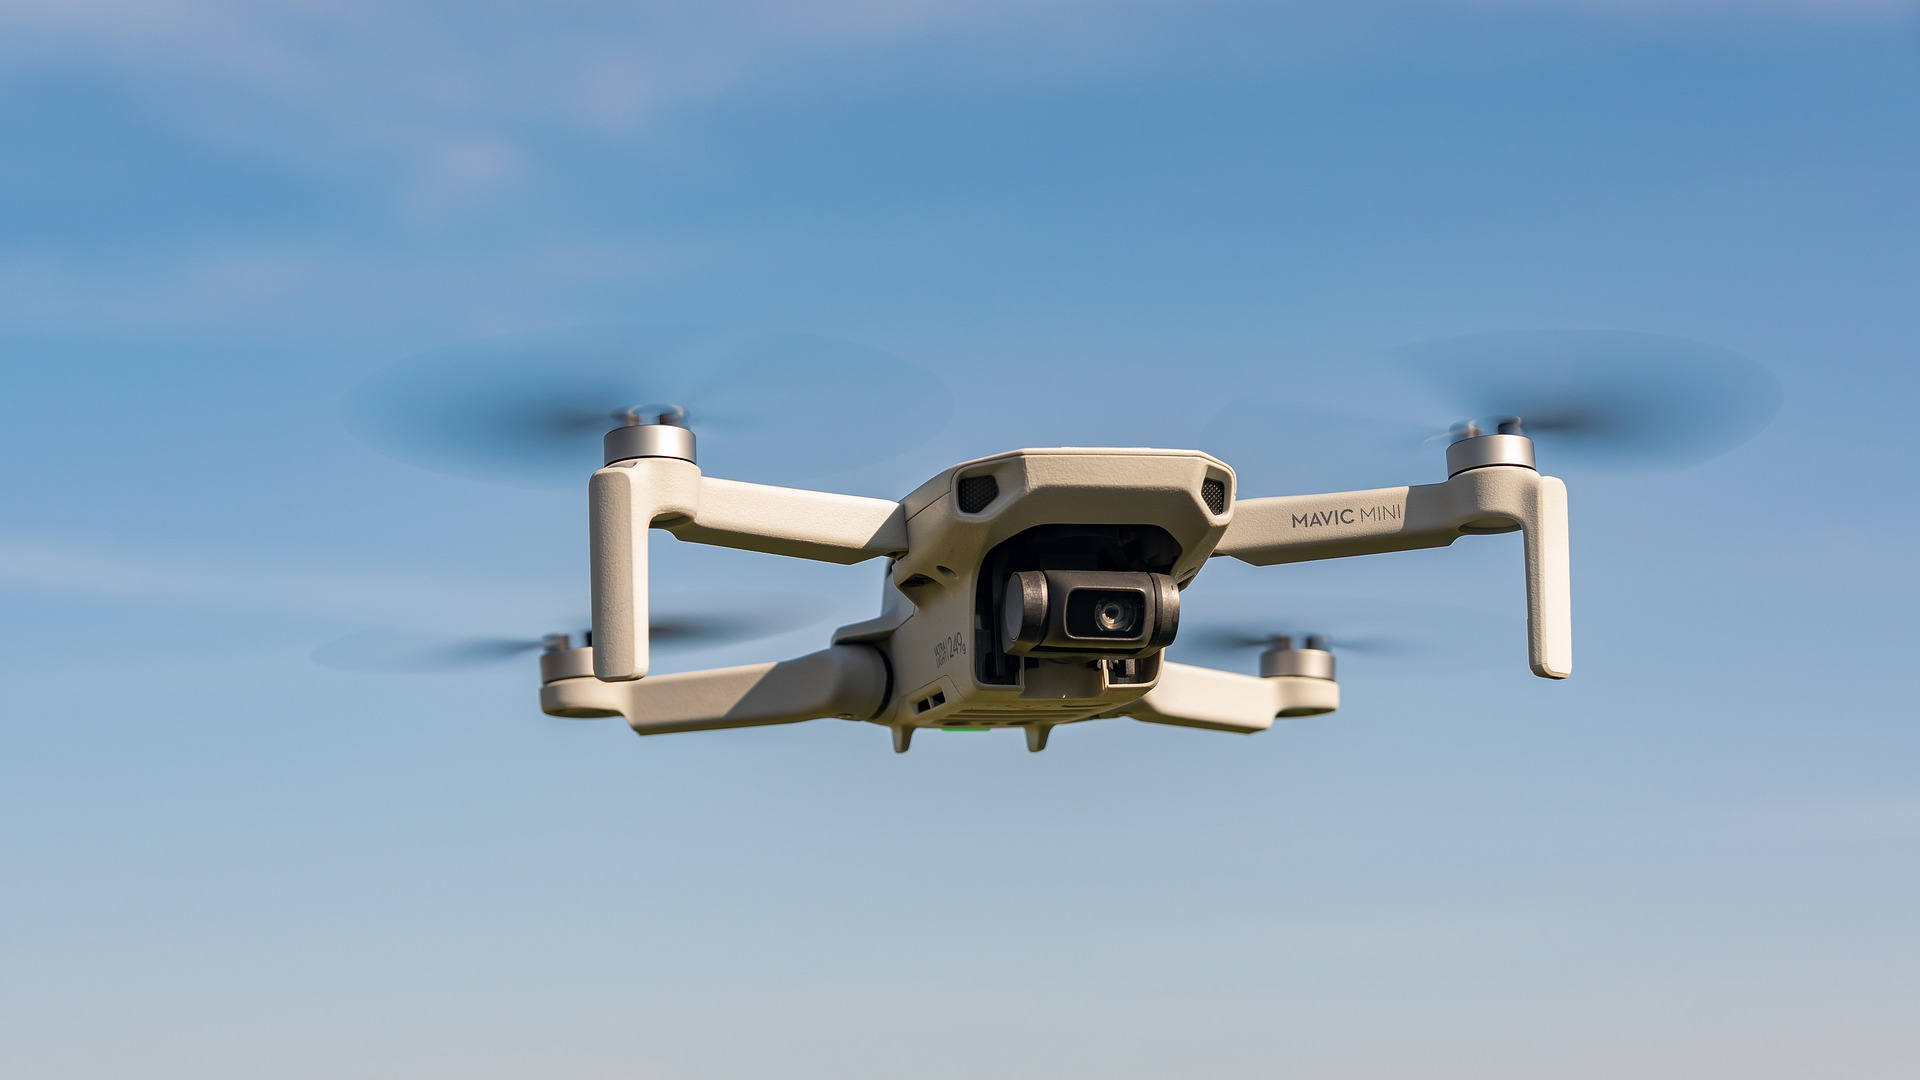 buy-a-DJI-drone-through-Affirm